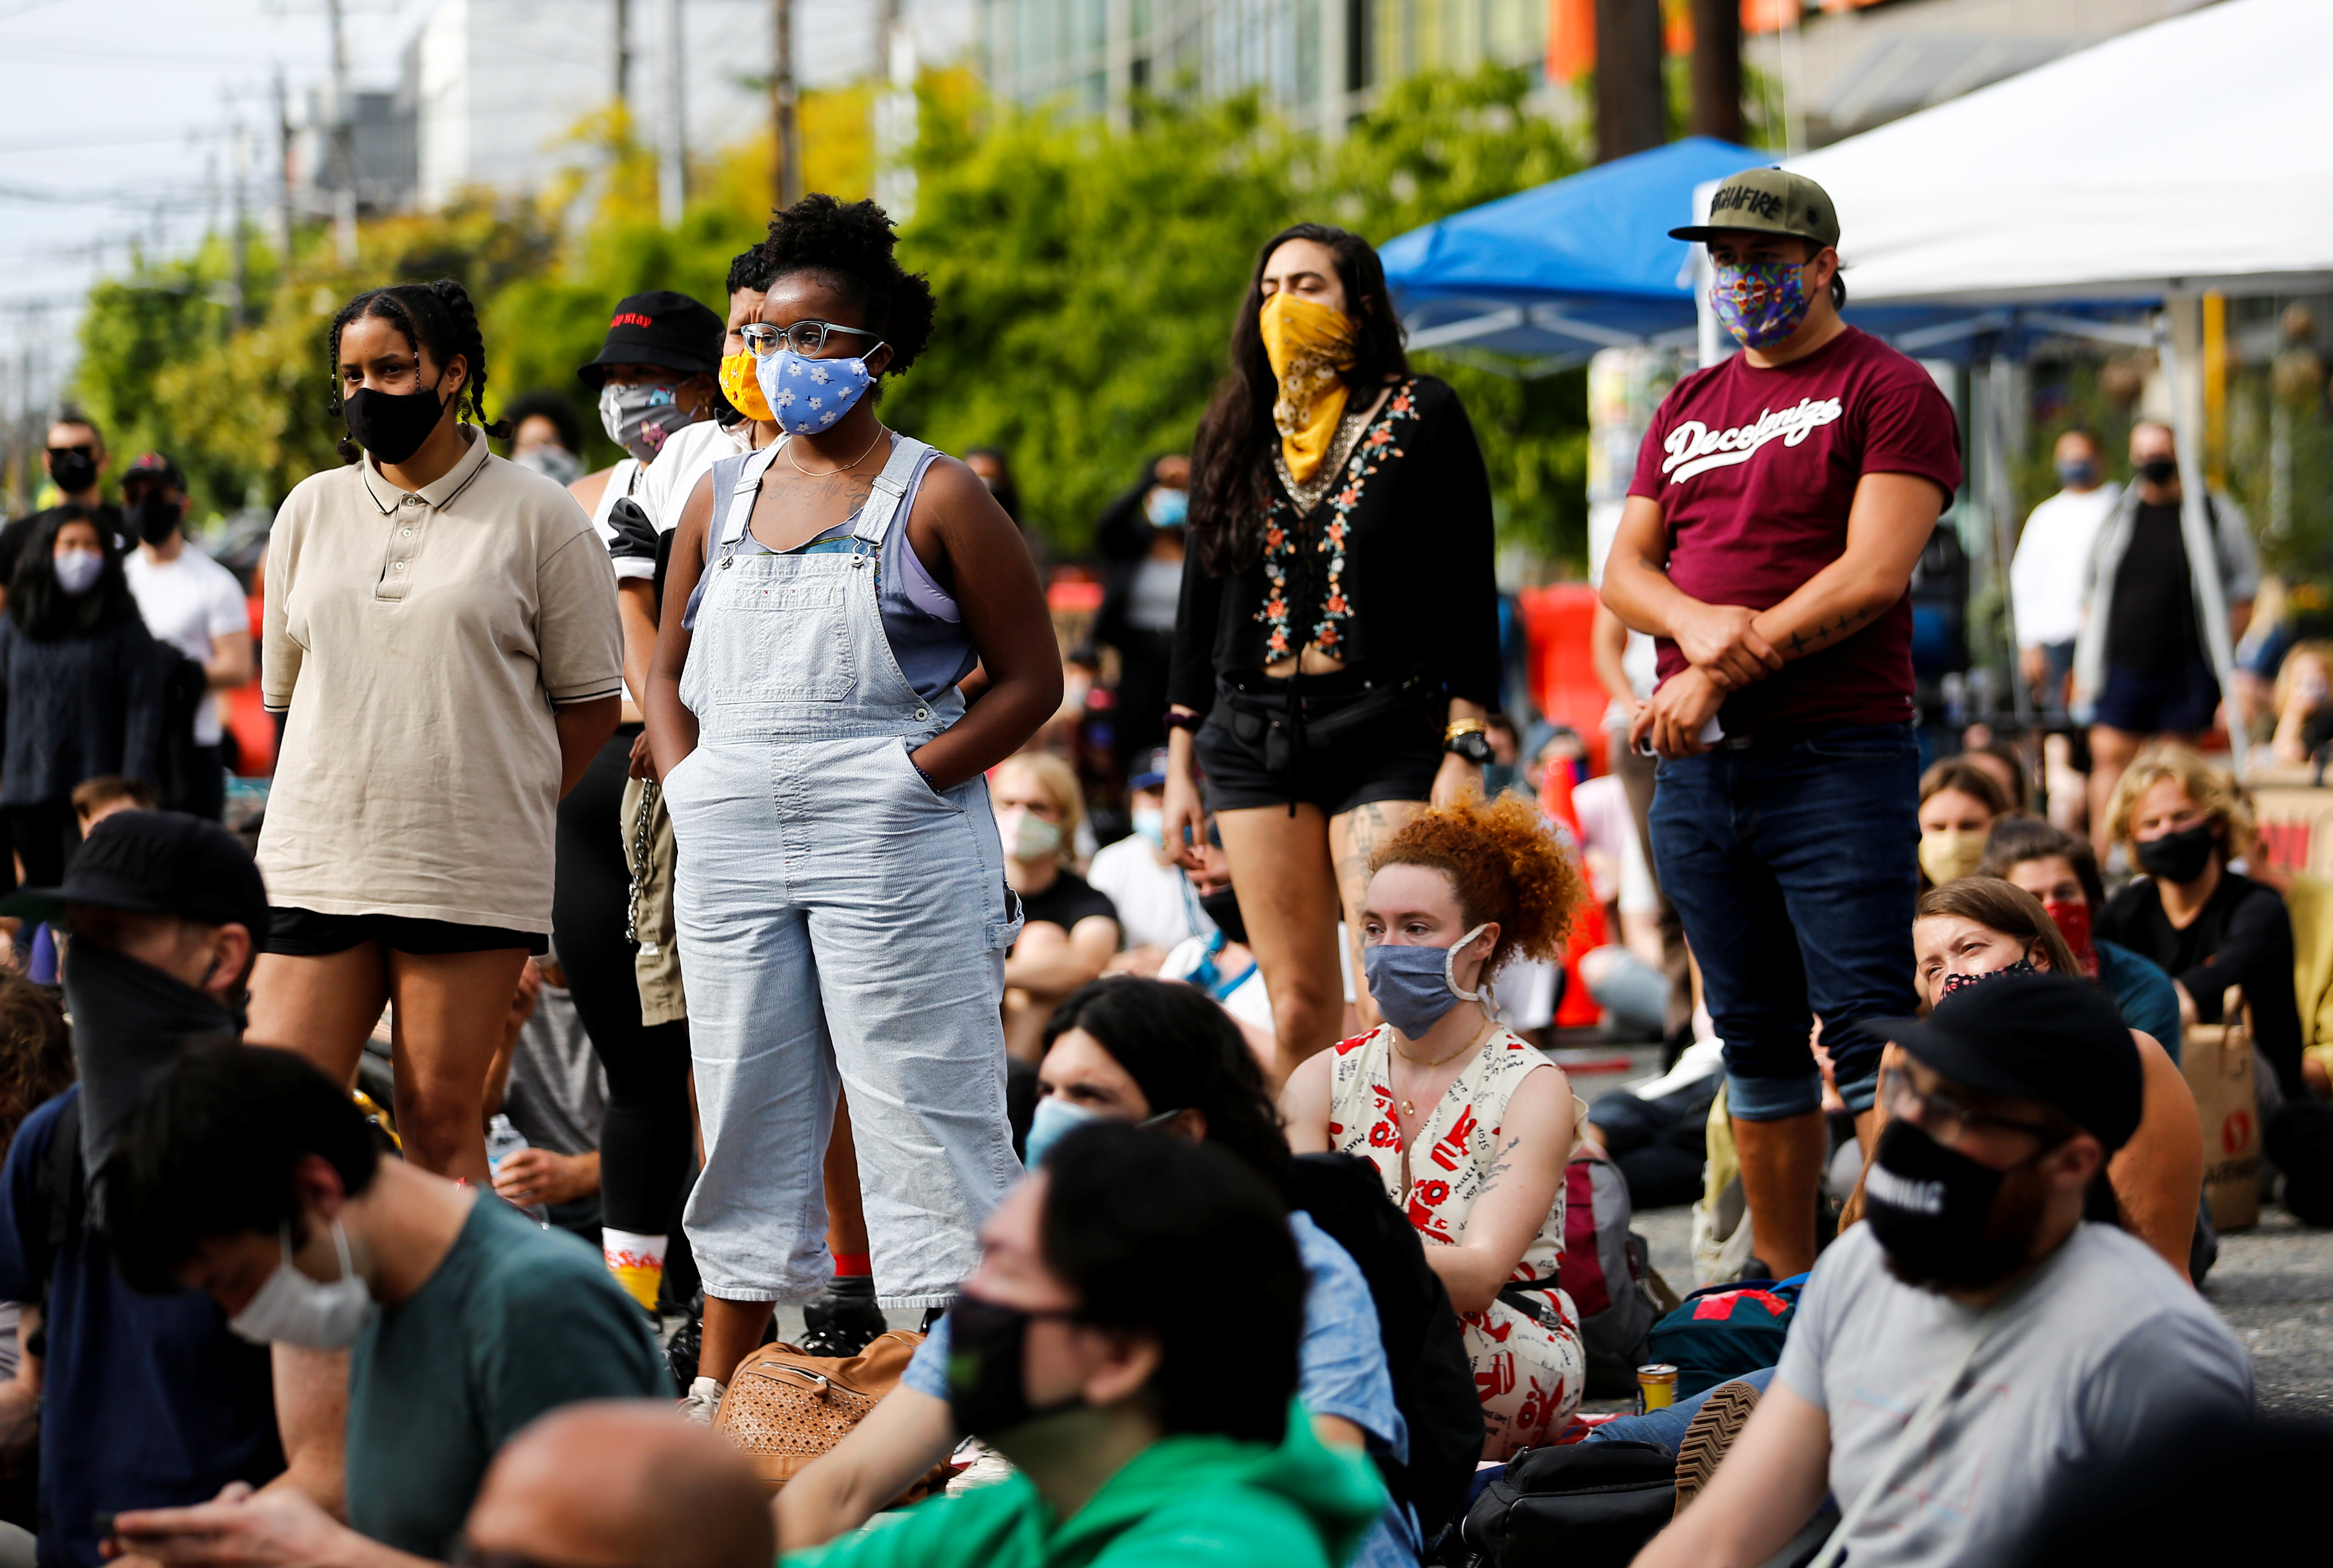 Protesters who identify as people of color stand as a speaker encourages white attendees to sit as protesters establish what they call an autonomous zone while continuing to protest against racial inequality and call for a defunding of Seattle police, in Seattle, Washington, U.S. June 10, 2020. (REUTERS/Lindsey Wasson)